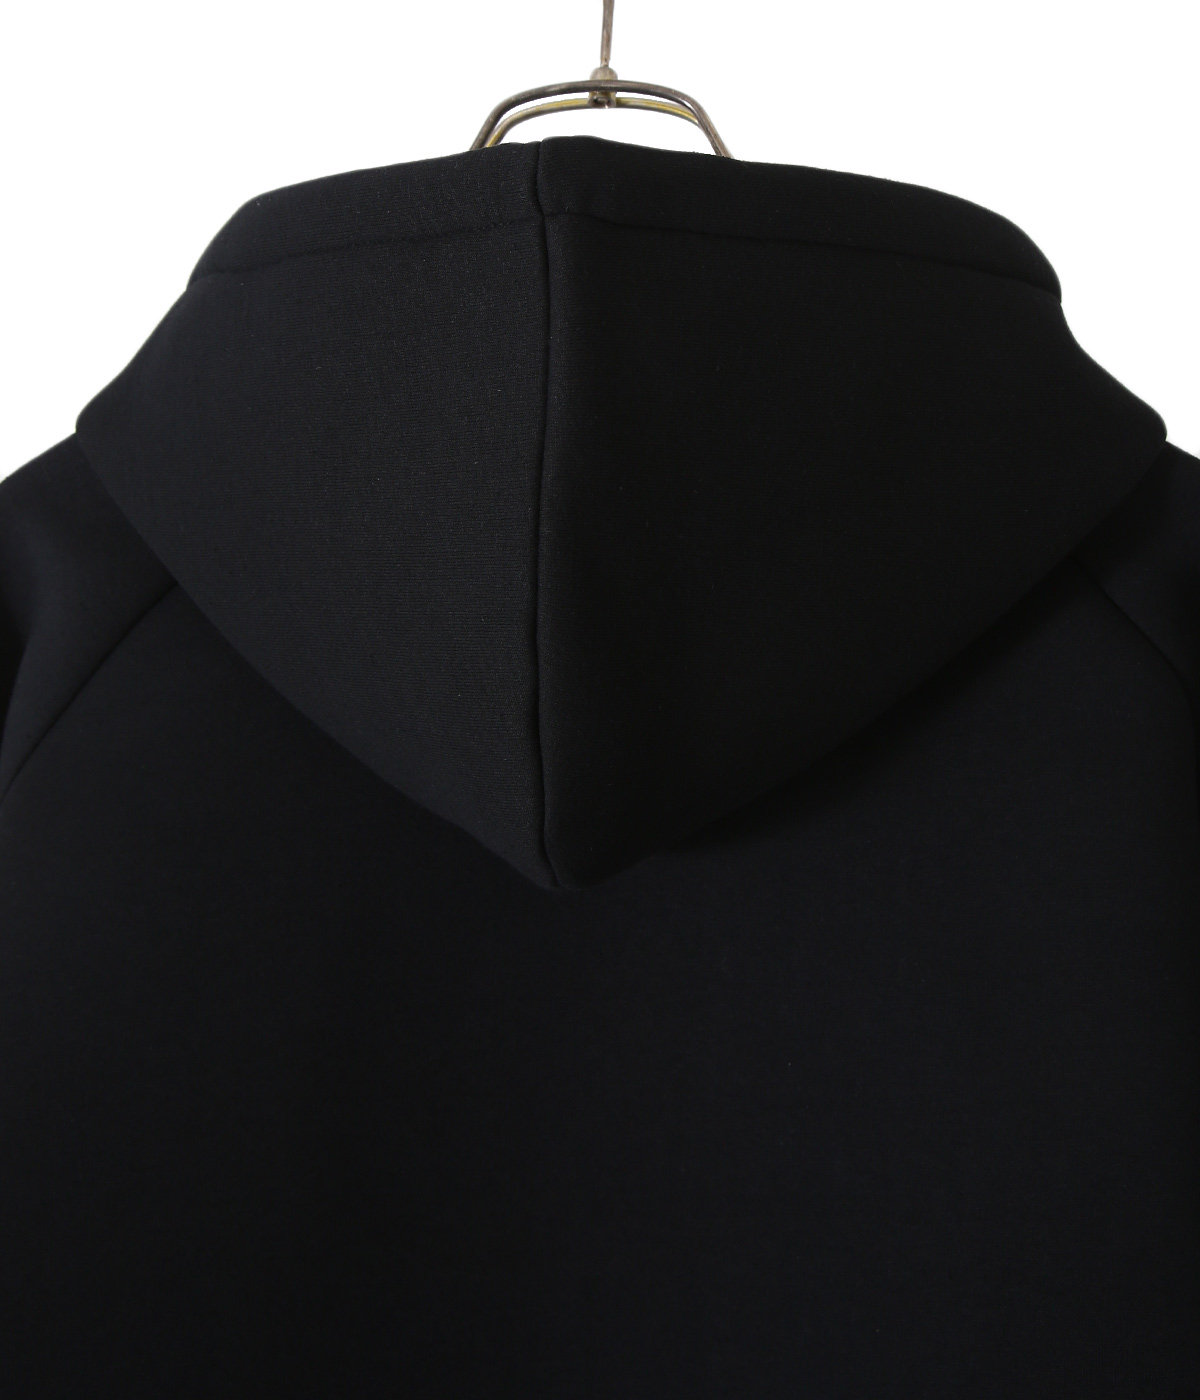 CAR-LUX HOODED JACKET